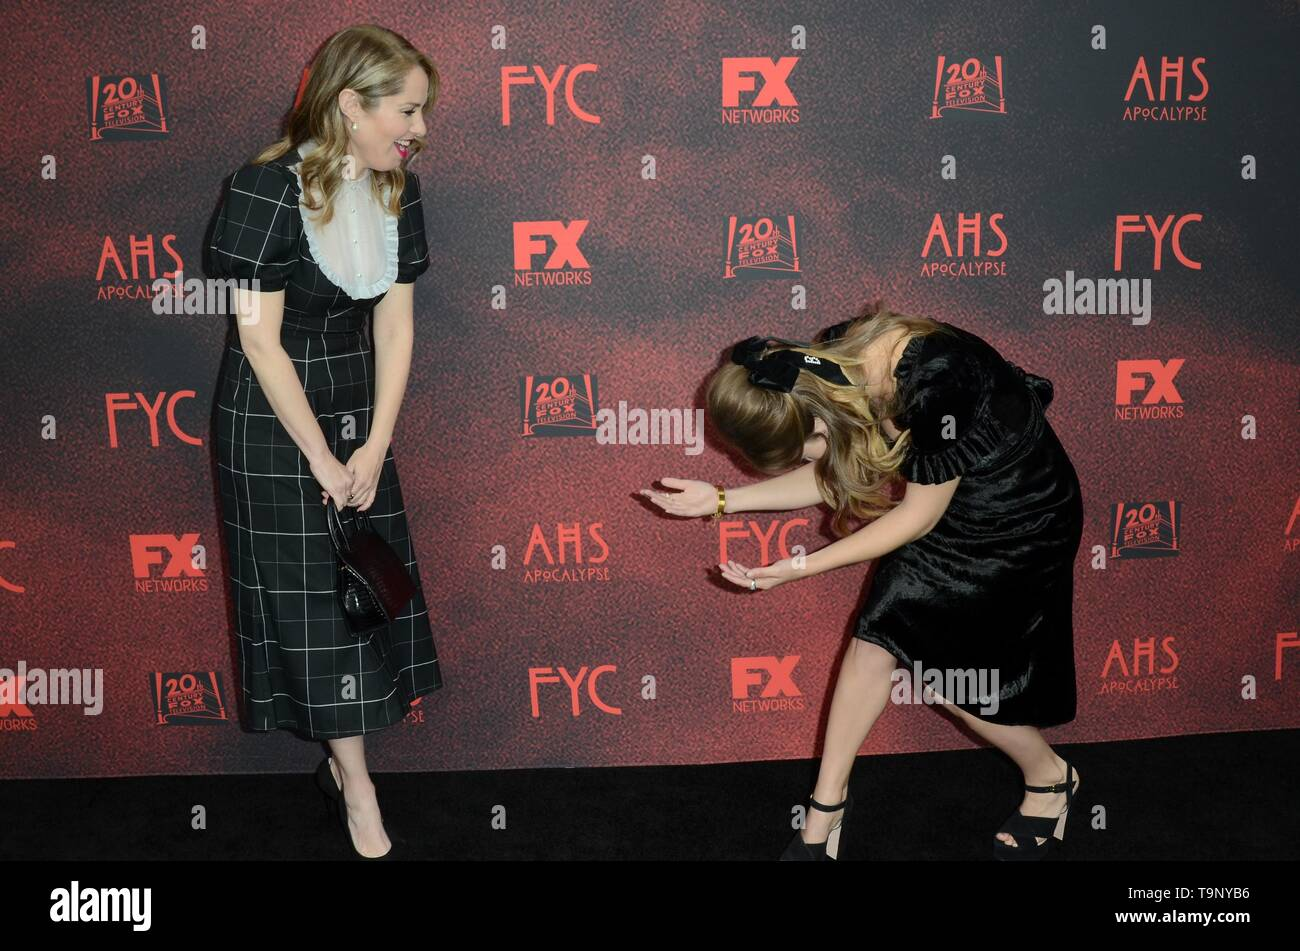 Los Angeles, CA, USA. 18th May, 2019. Leslie Grossman, Billie Lourd at arrivals for AMERICAN HORROR STORY: APOCALYPSE FYC Event, NeueHouse, Los Angeles, CA May 18, 2019. Credit: Priscilla Grant/Everett Collection/Alamy Live News - Stock Image